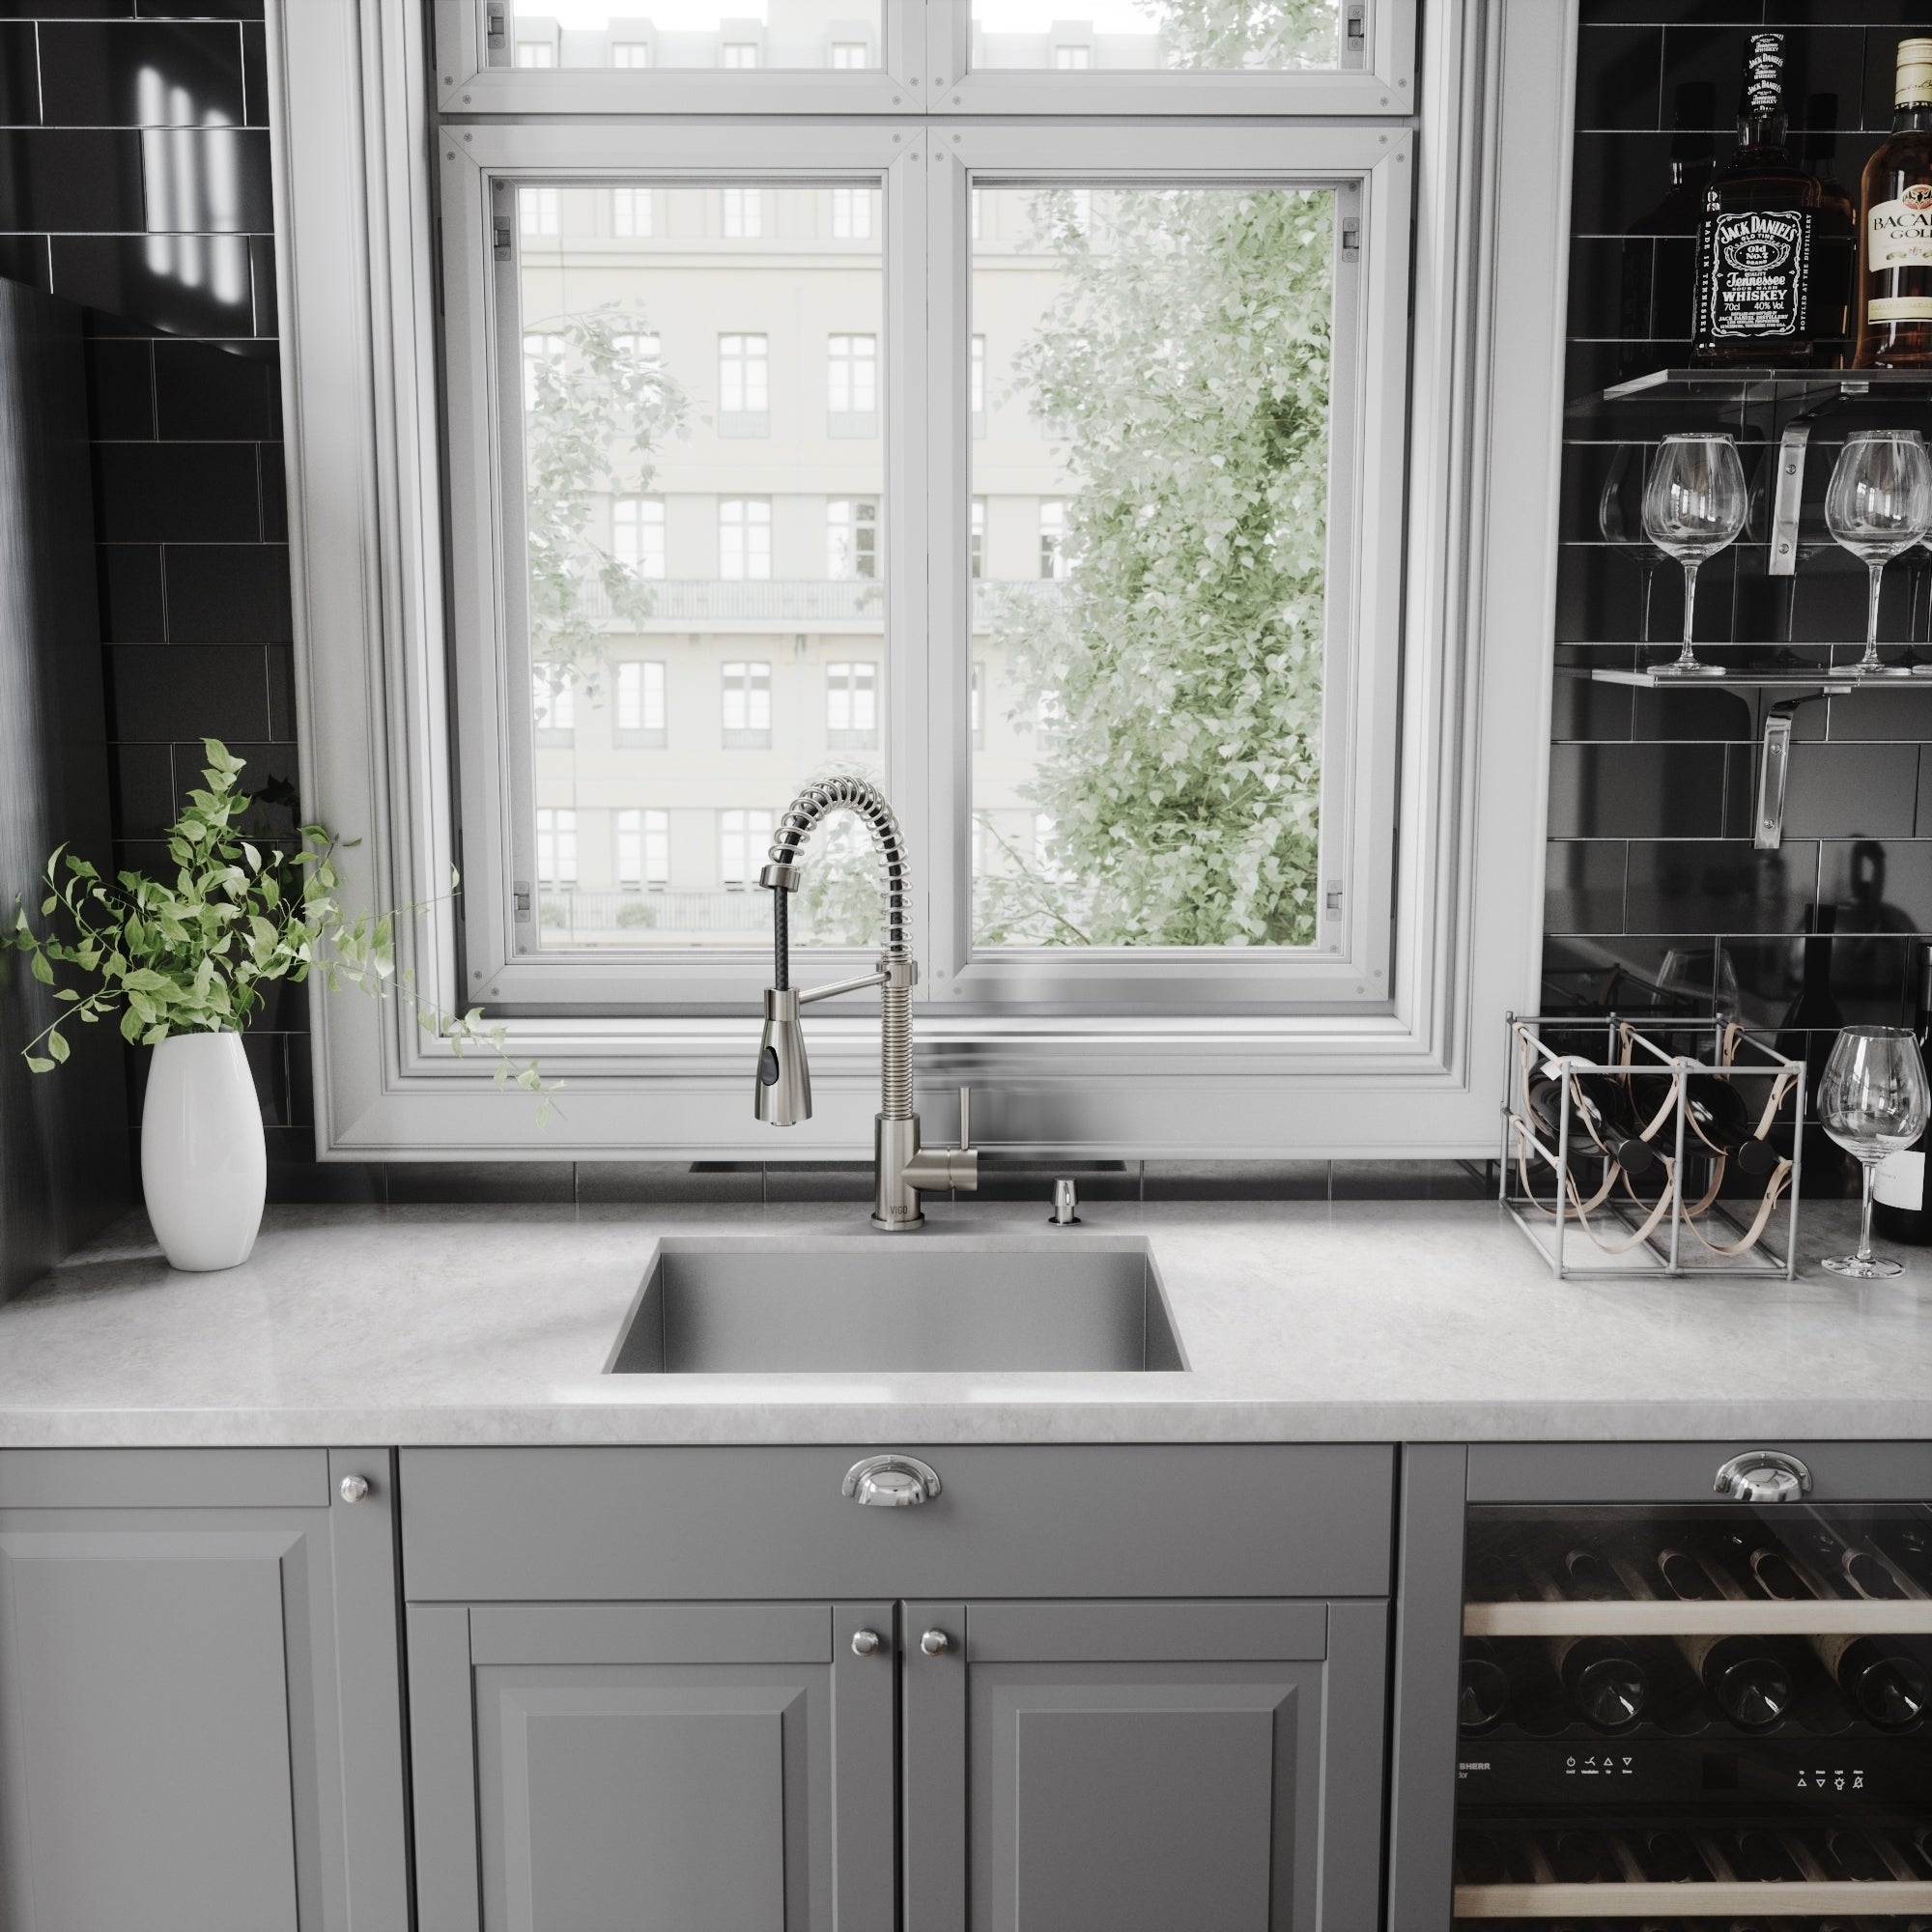 VIGO Brant Stainless Steel Pull Down Kitchen Faucet   Free Shipping Today    Overstock   12541791